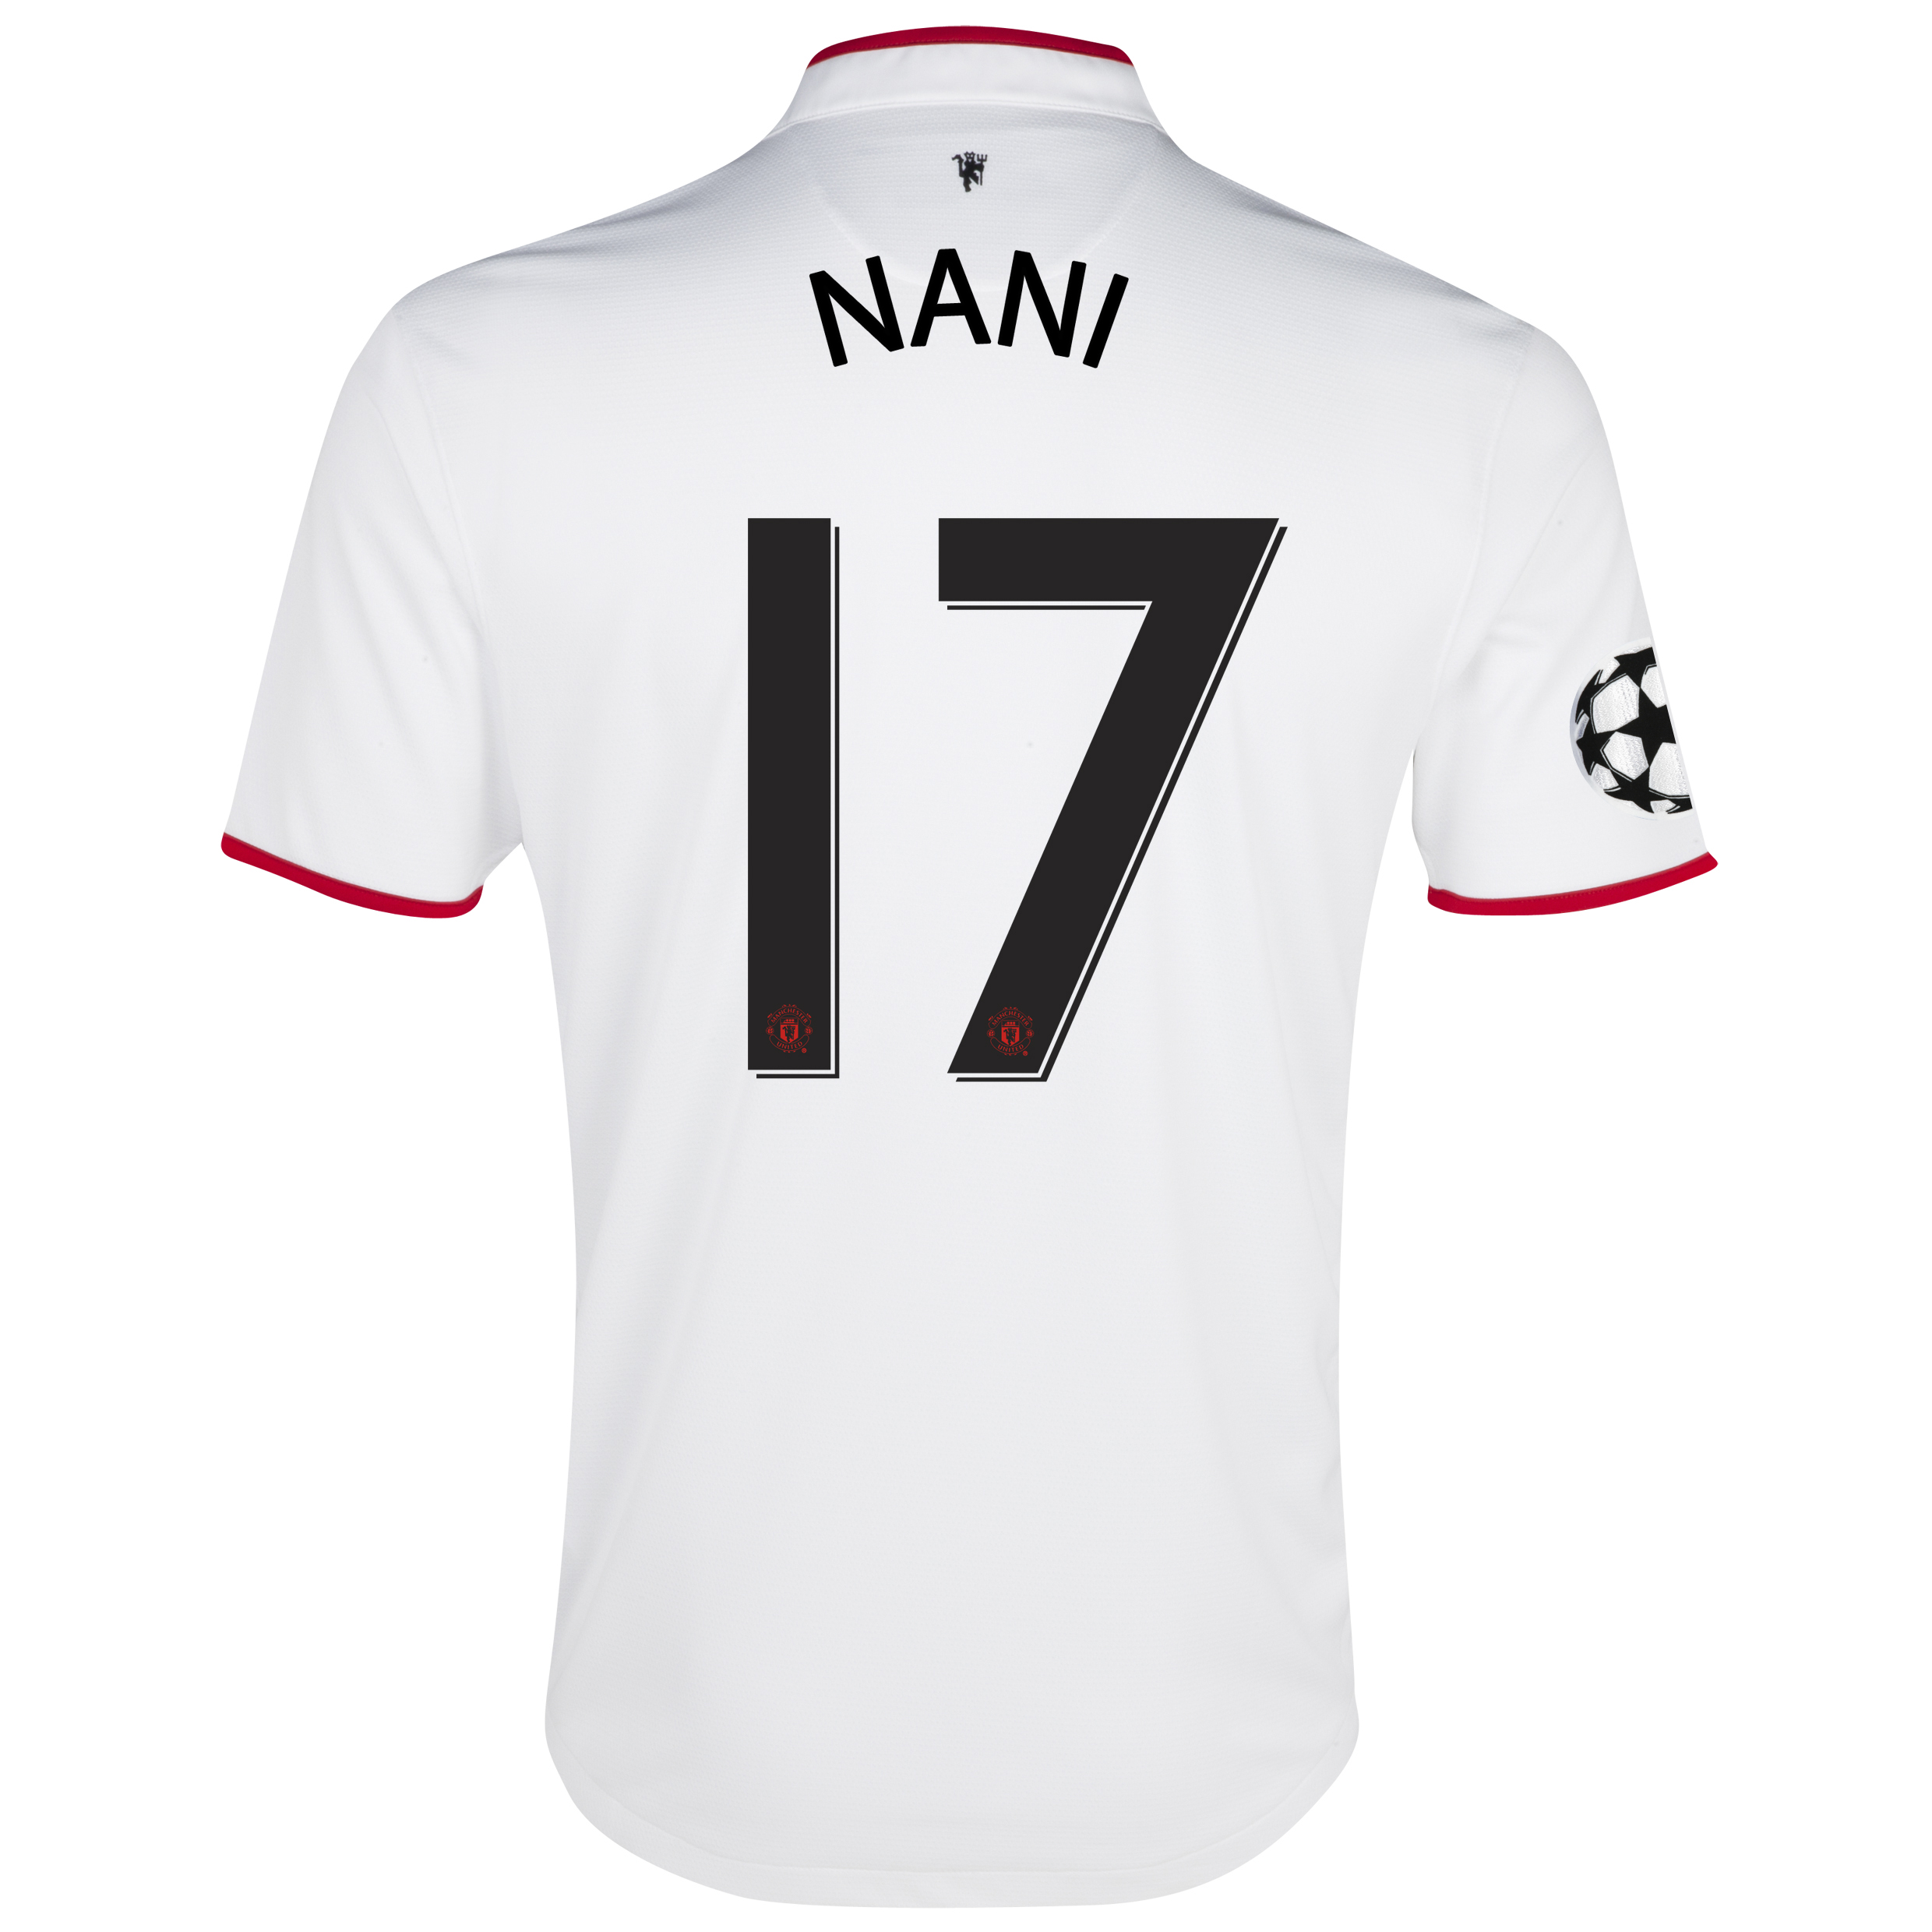 Manchester United UEFA Champions League Away Shirt 2012/13 with Nani 17 printing